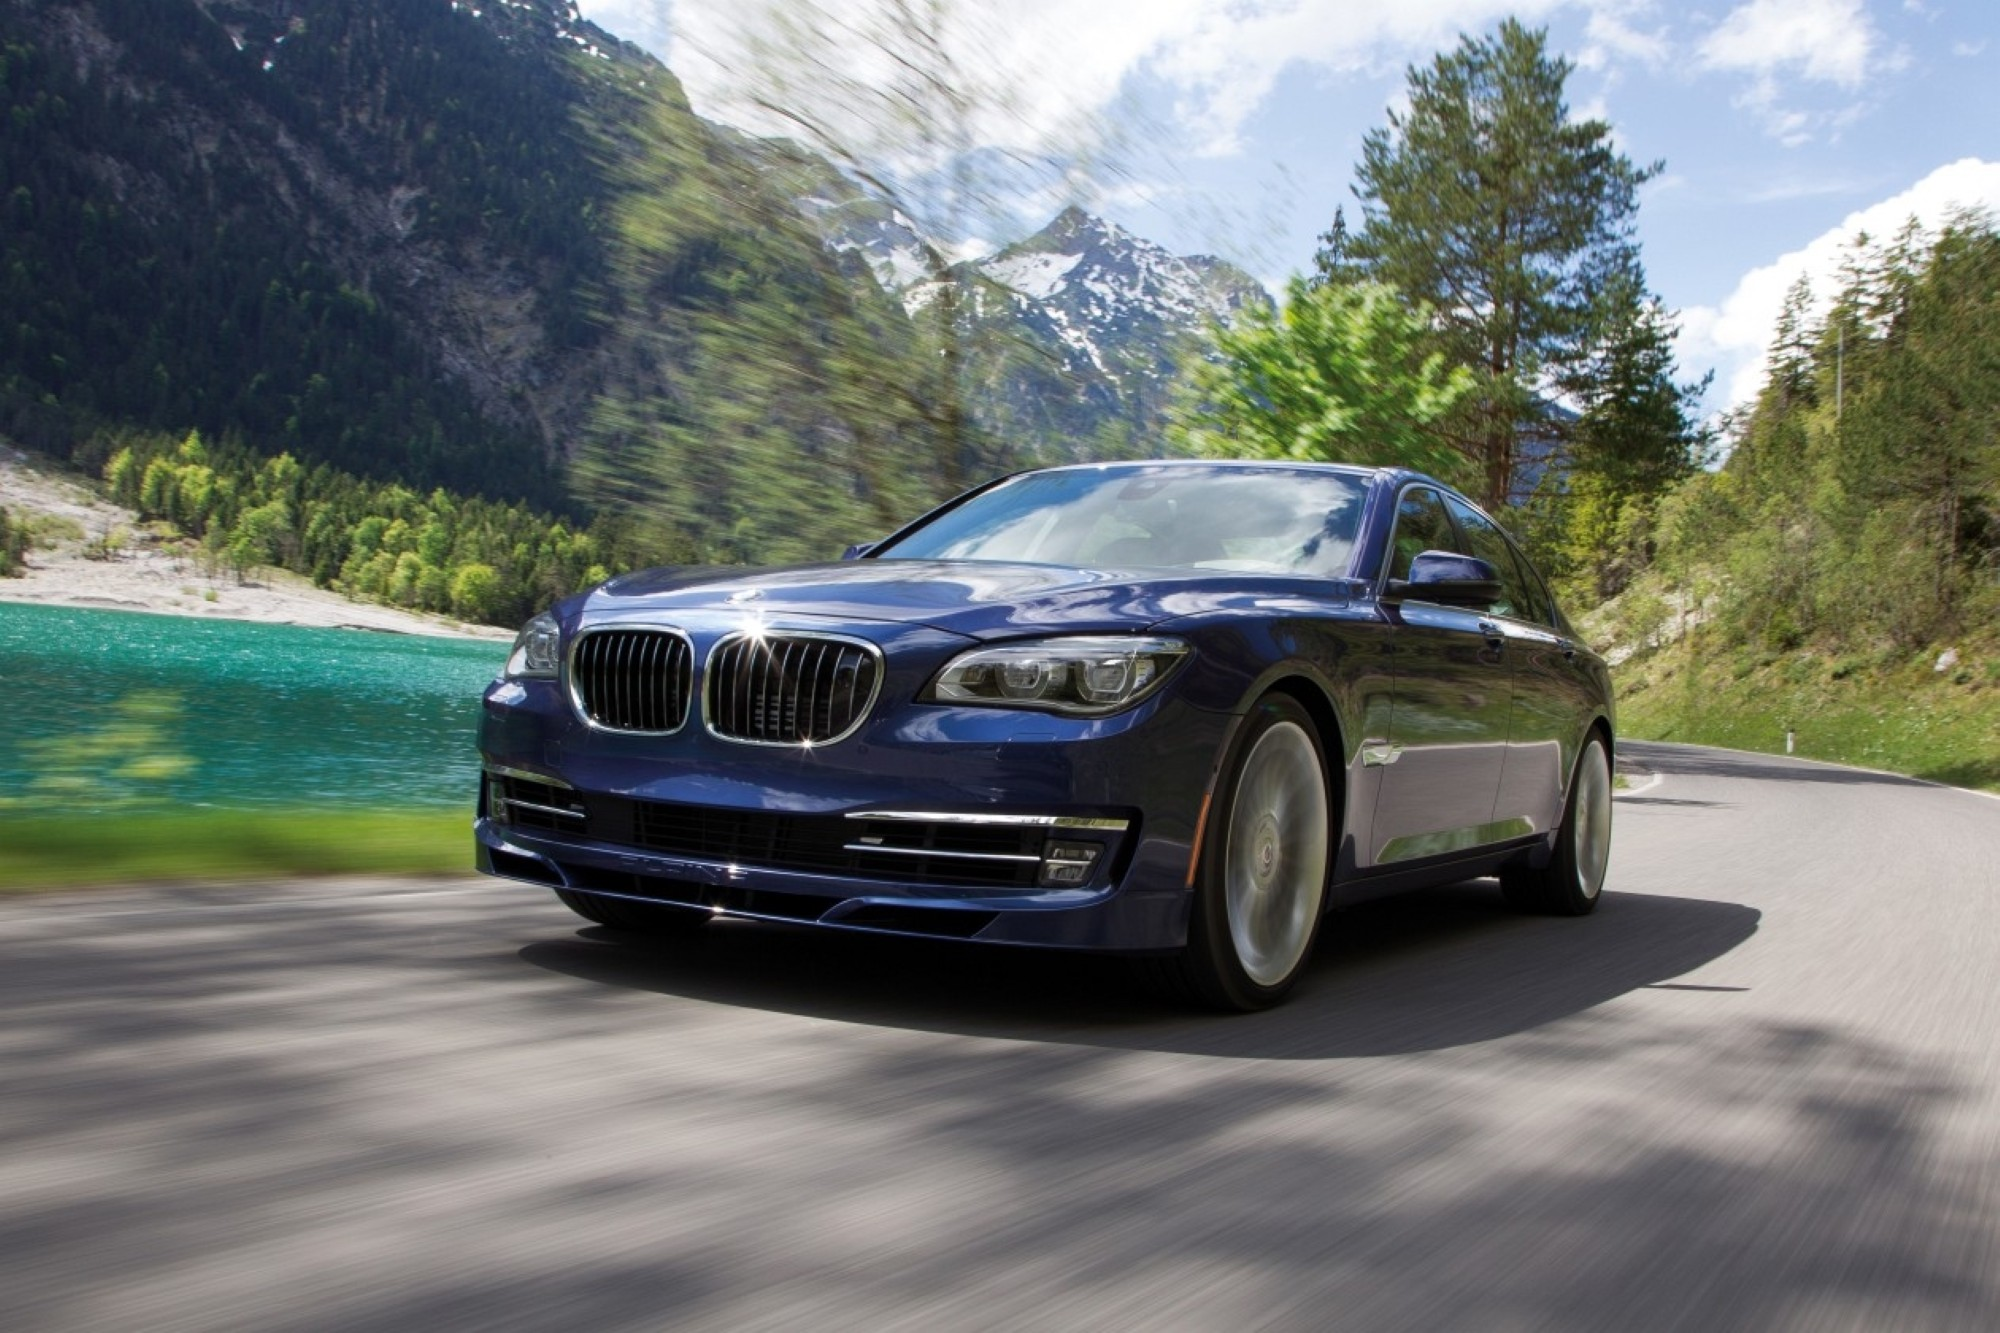 bmw reviews price alpina amazing ratings msrp news with images